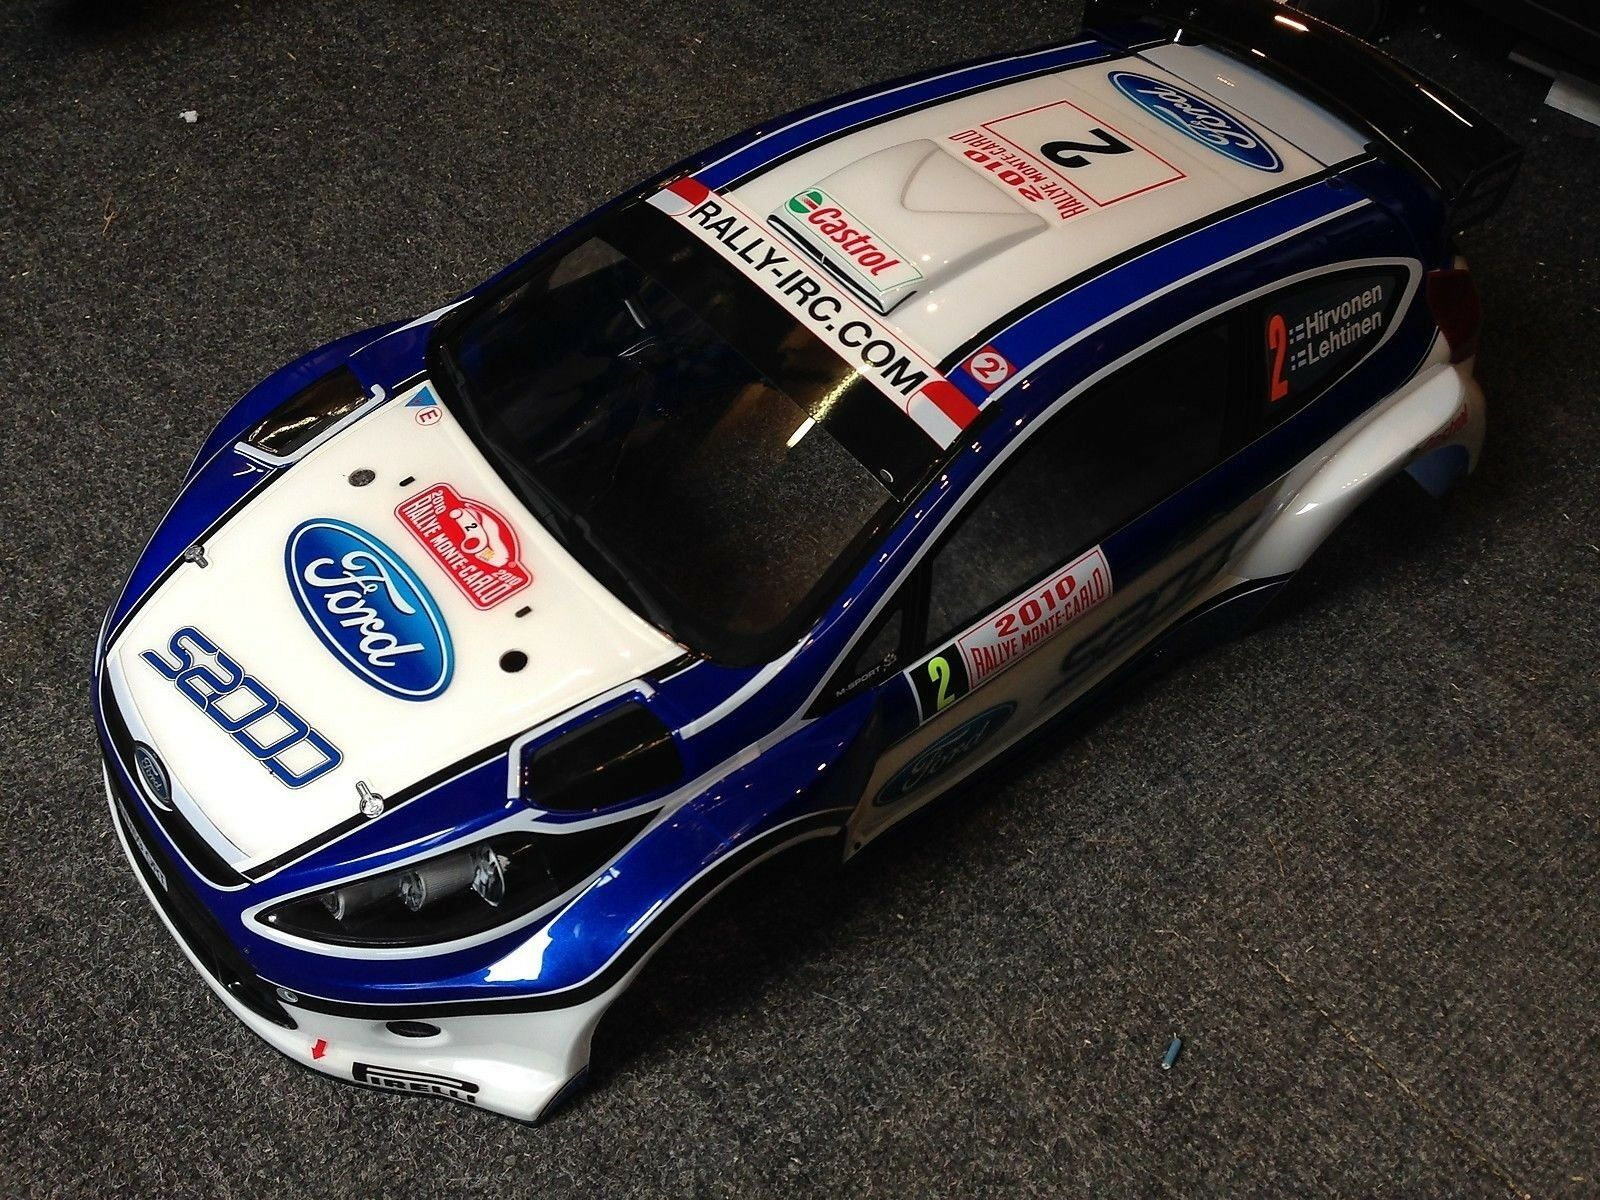 NEW PAINTED KYOSHO DRX FIESTA S2000, BODY SHELL WITH DECALS, 1 9TH SCALE, TRB123